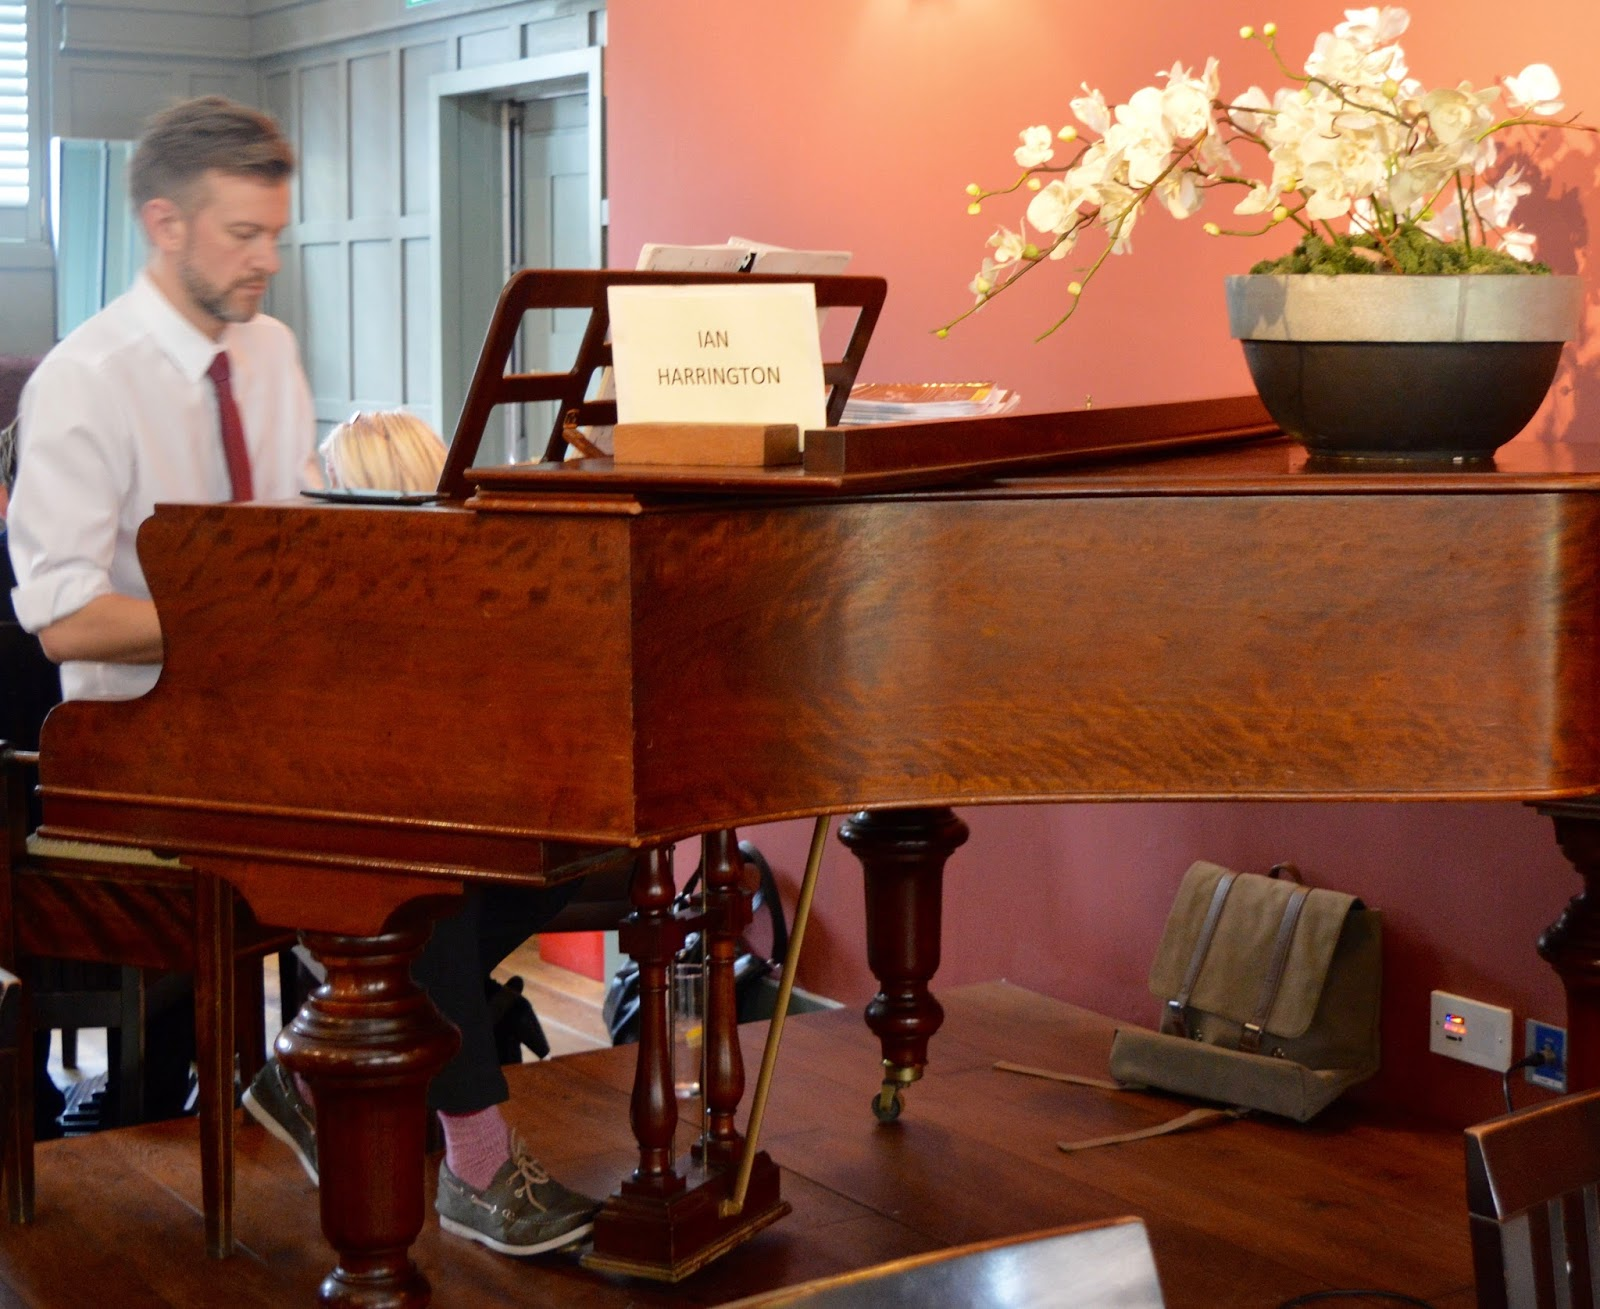 Family Sunday Lunch at The Cherry Tree Restaurant, Jesmond | A Review - Pianist Ian Harrington